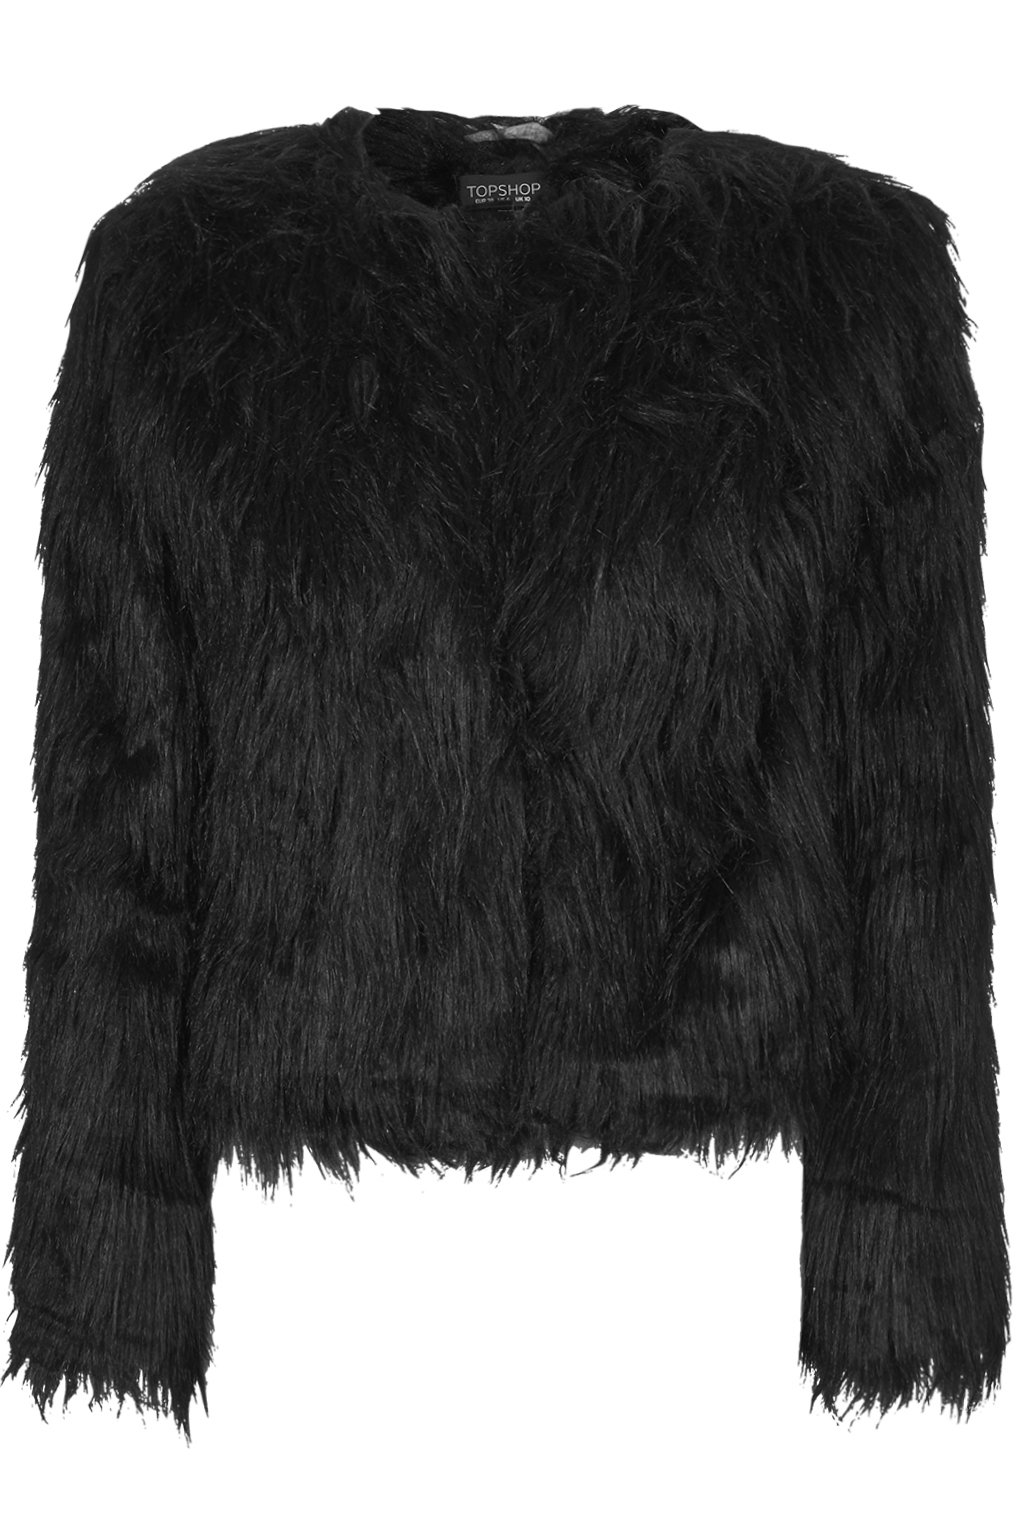 Shearling Fur Jacket - Jackets &amp Coats - Clothing